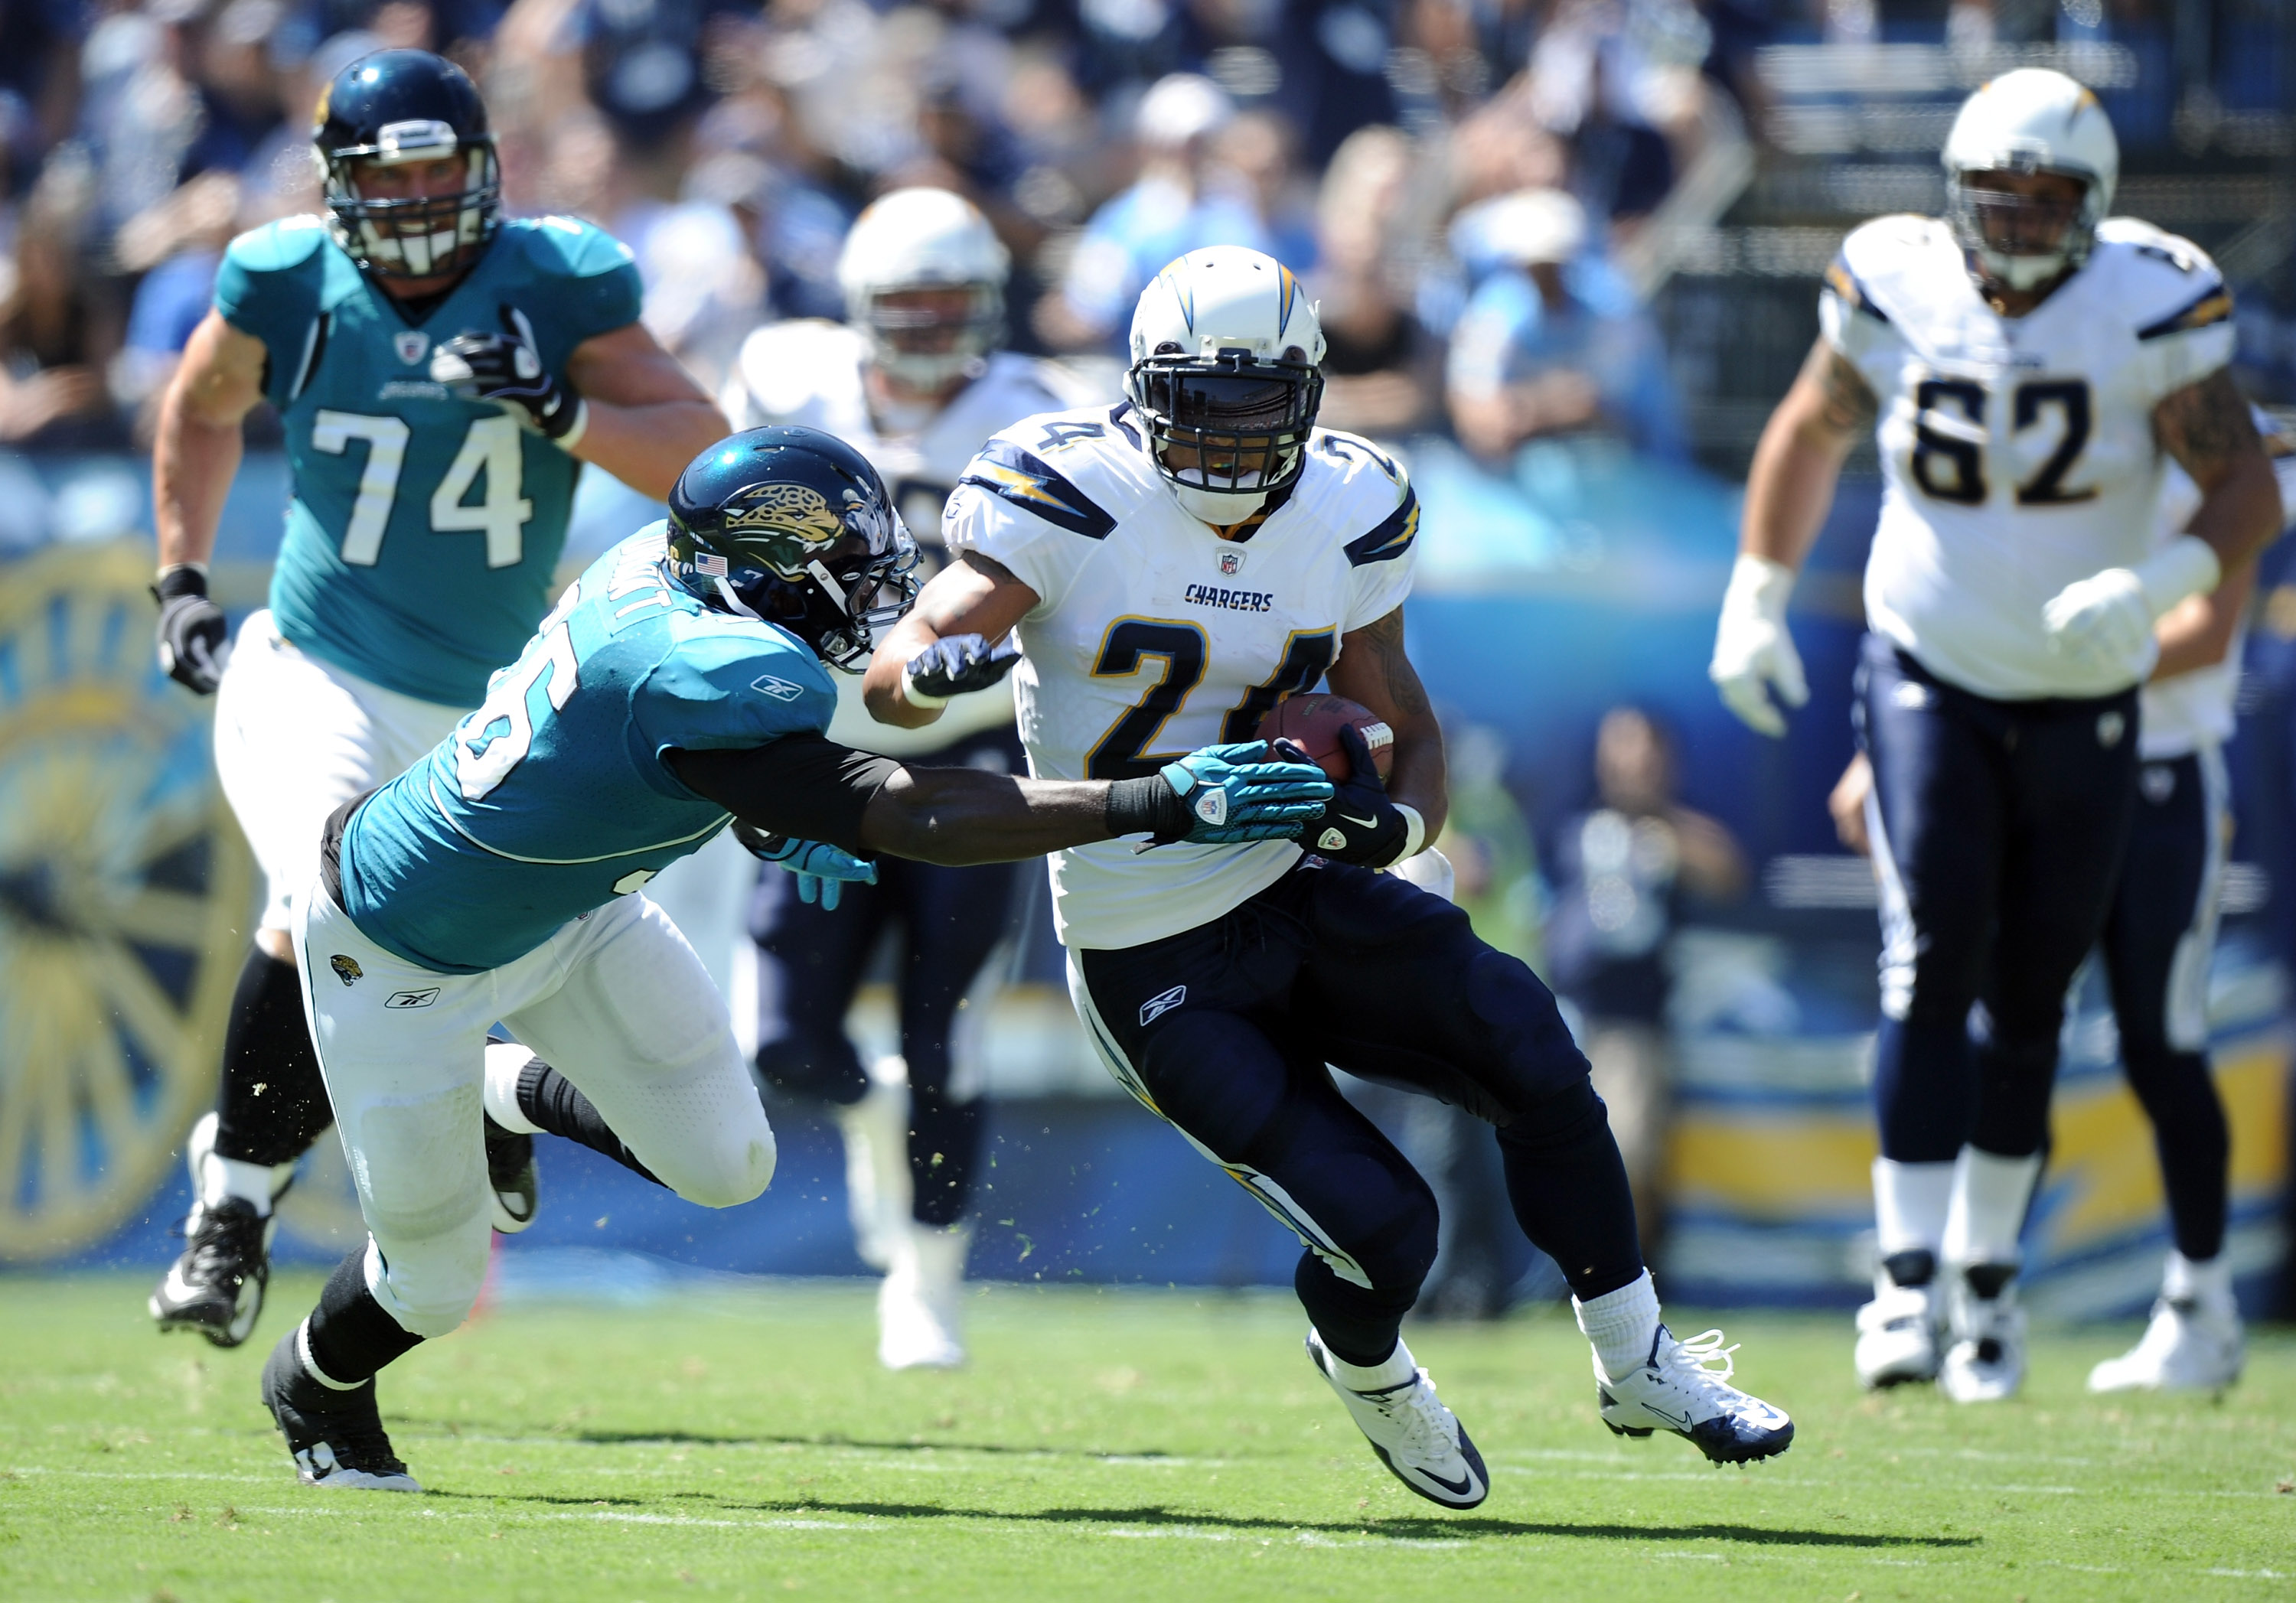 SAN DIEGO - SEPTEMBER 19:  Ryan Mathews #24 of the San Diego Chargers rushes past Justin Durant #56 of the Jacksonville Jaguars during the first quarter at Qualcomm Stadium on September 19, 2010 in San Diego, California. The Chargers won 38-13. (Photo by